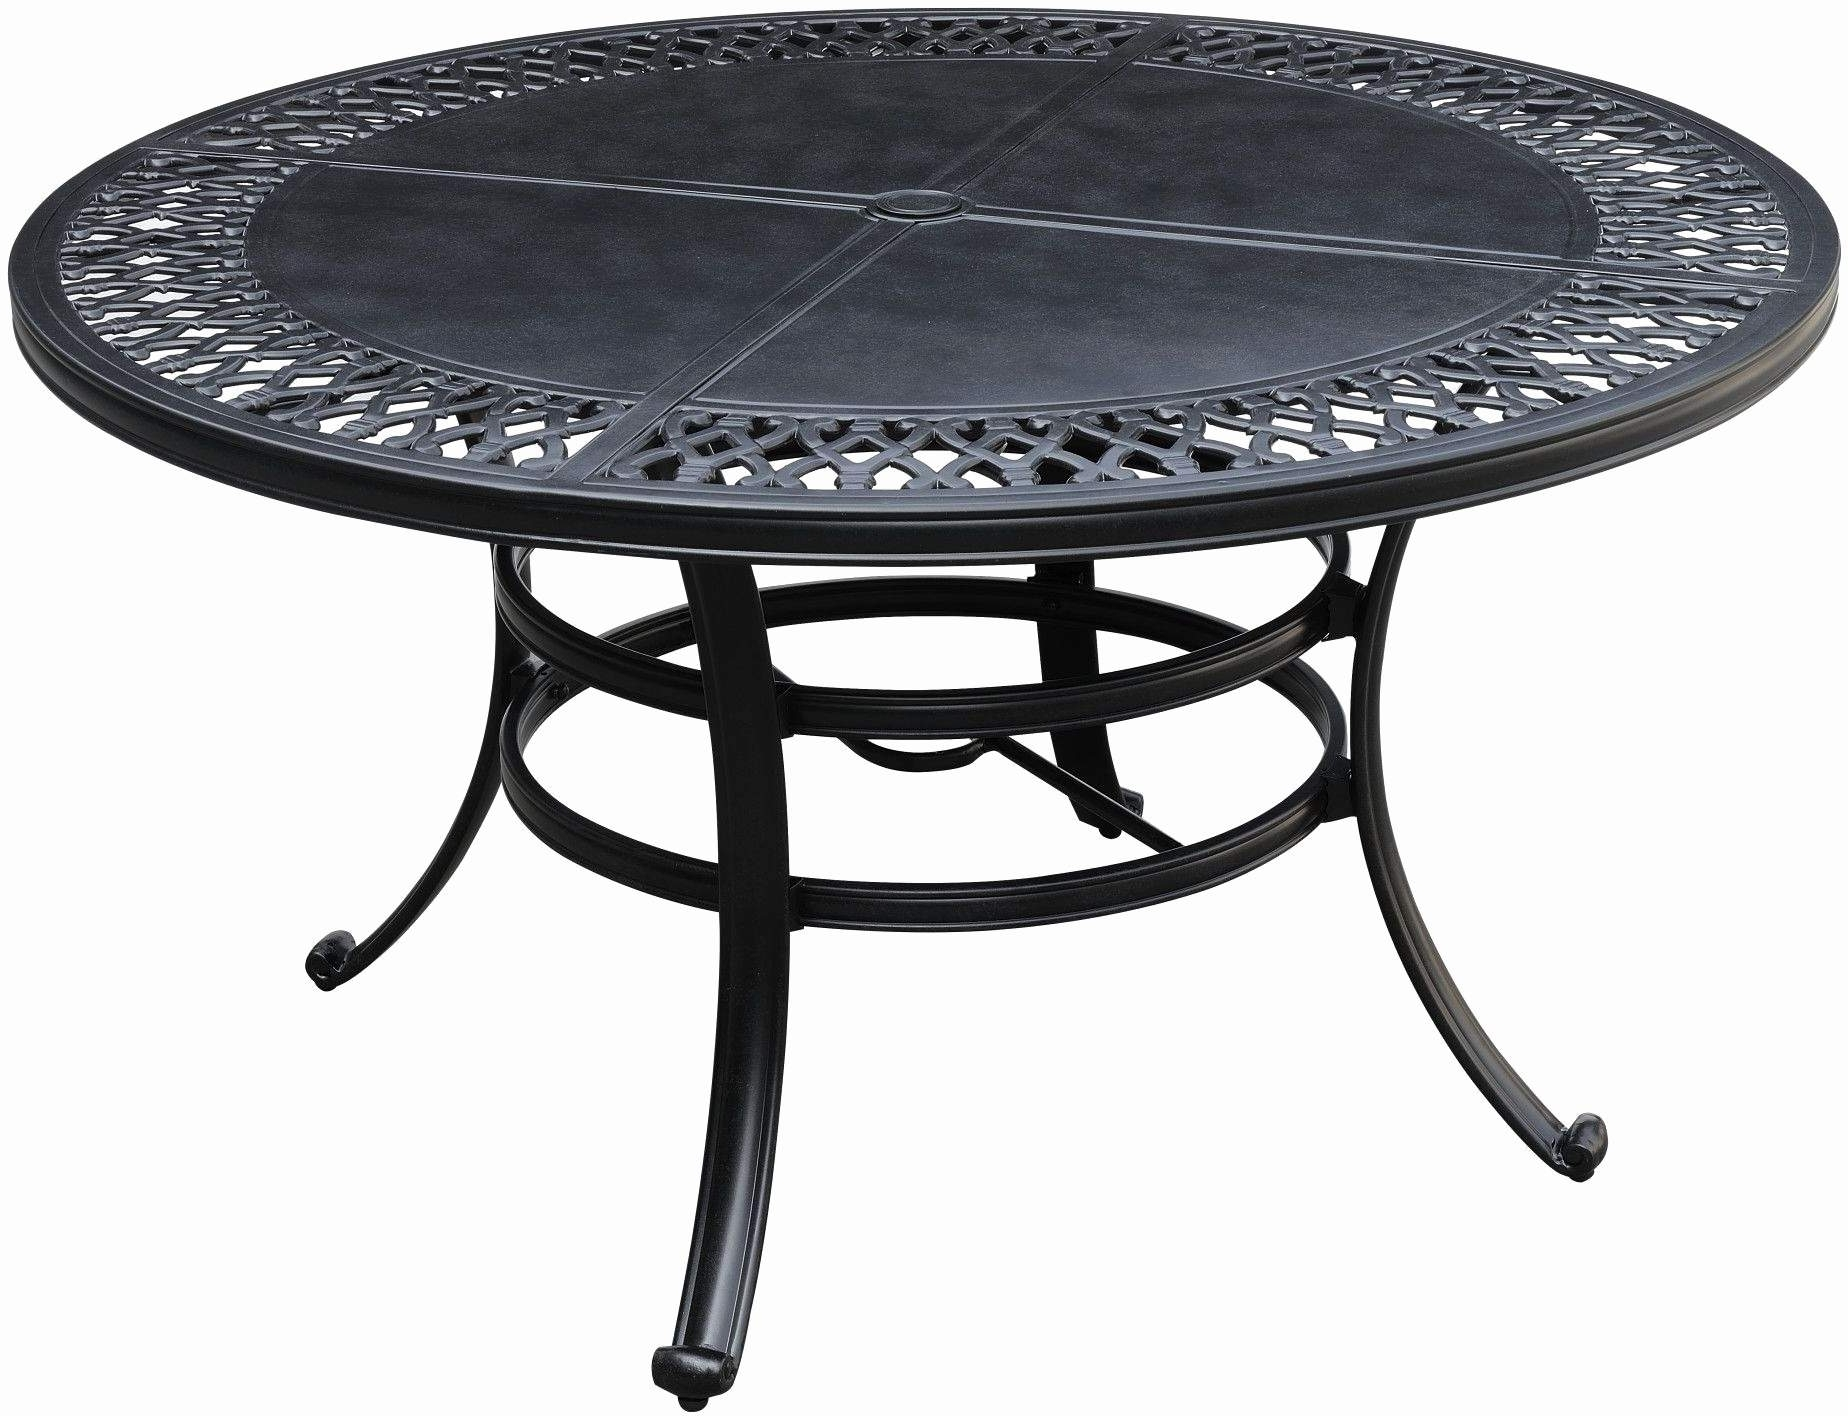 Mosaic Outdoor Coffee Table Inspirational Mosaic Dining Table Patio With Regard To Recent Patio Umbrella Stand Side Tables (View 18 of 20)